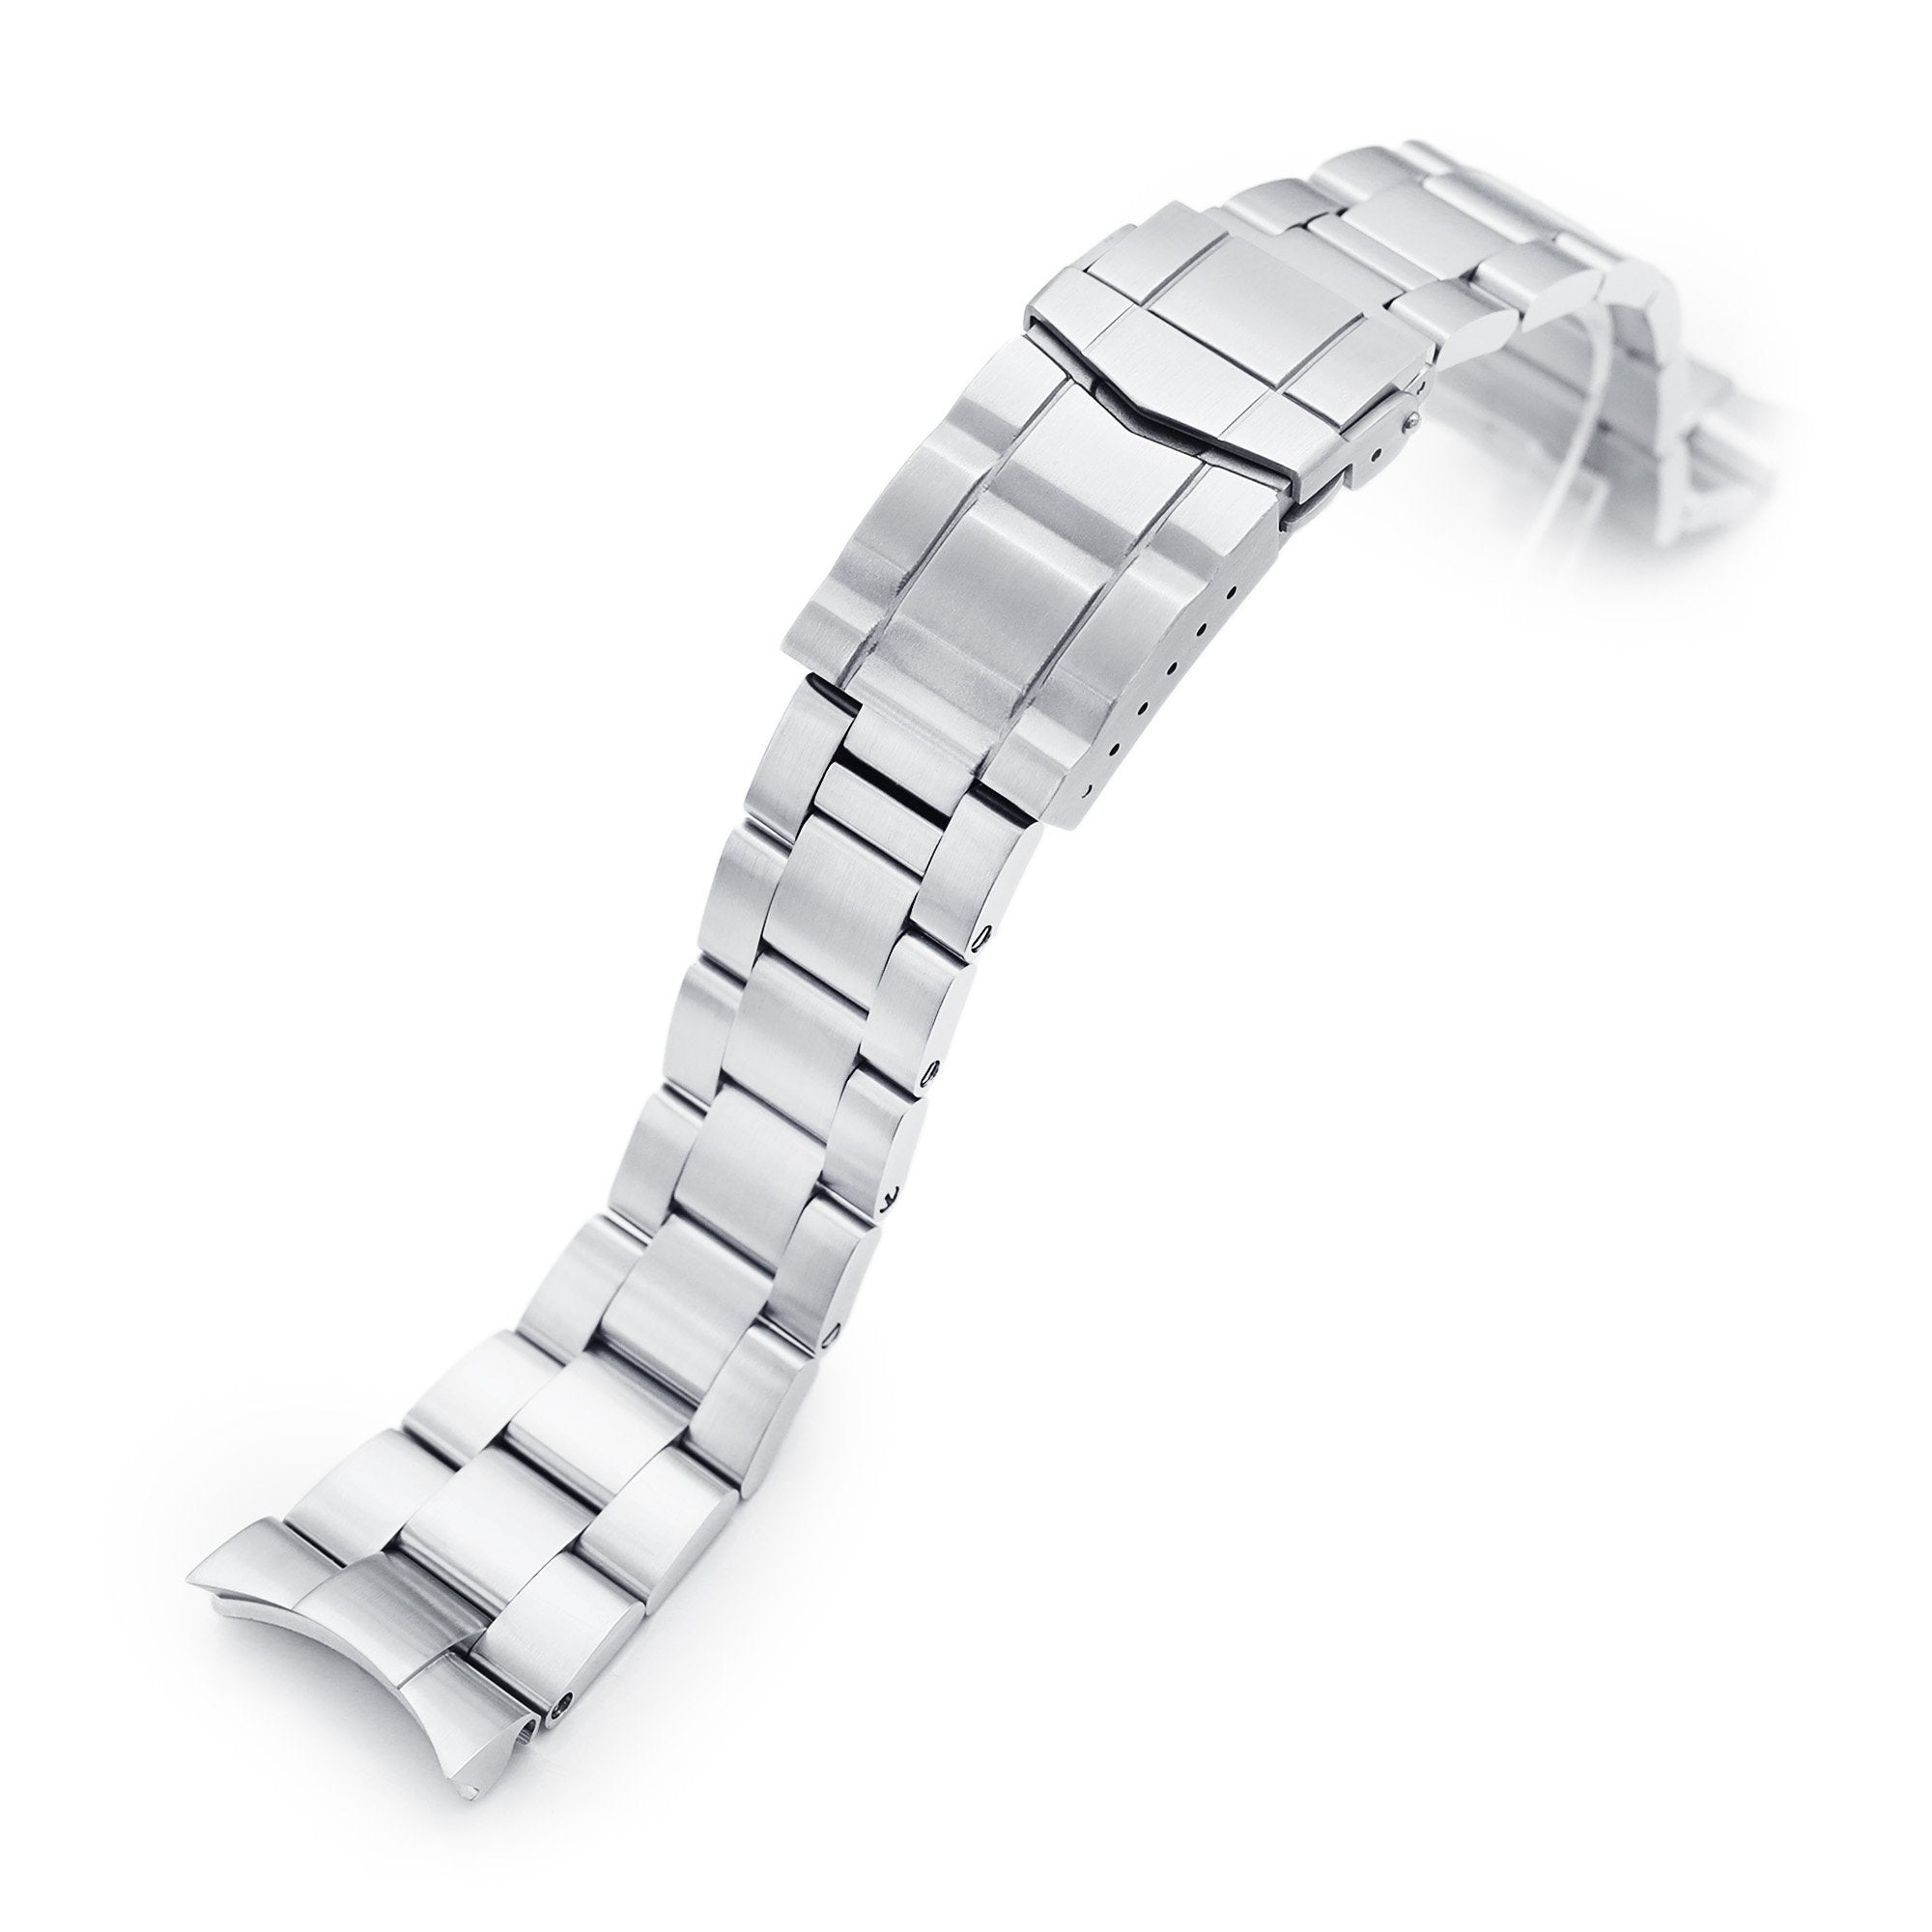 22mm Super-O Boyer 316L Stainless Steel Watch Bracelet for Orient Kamasu Brushed SUB Clasp Strapcode Watch Bands